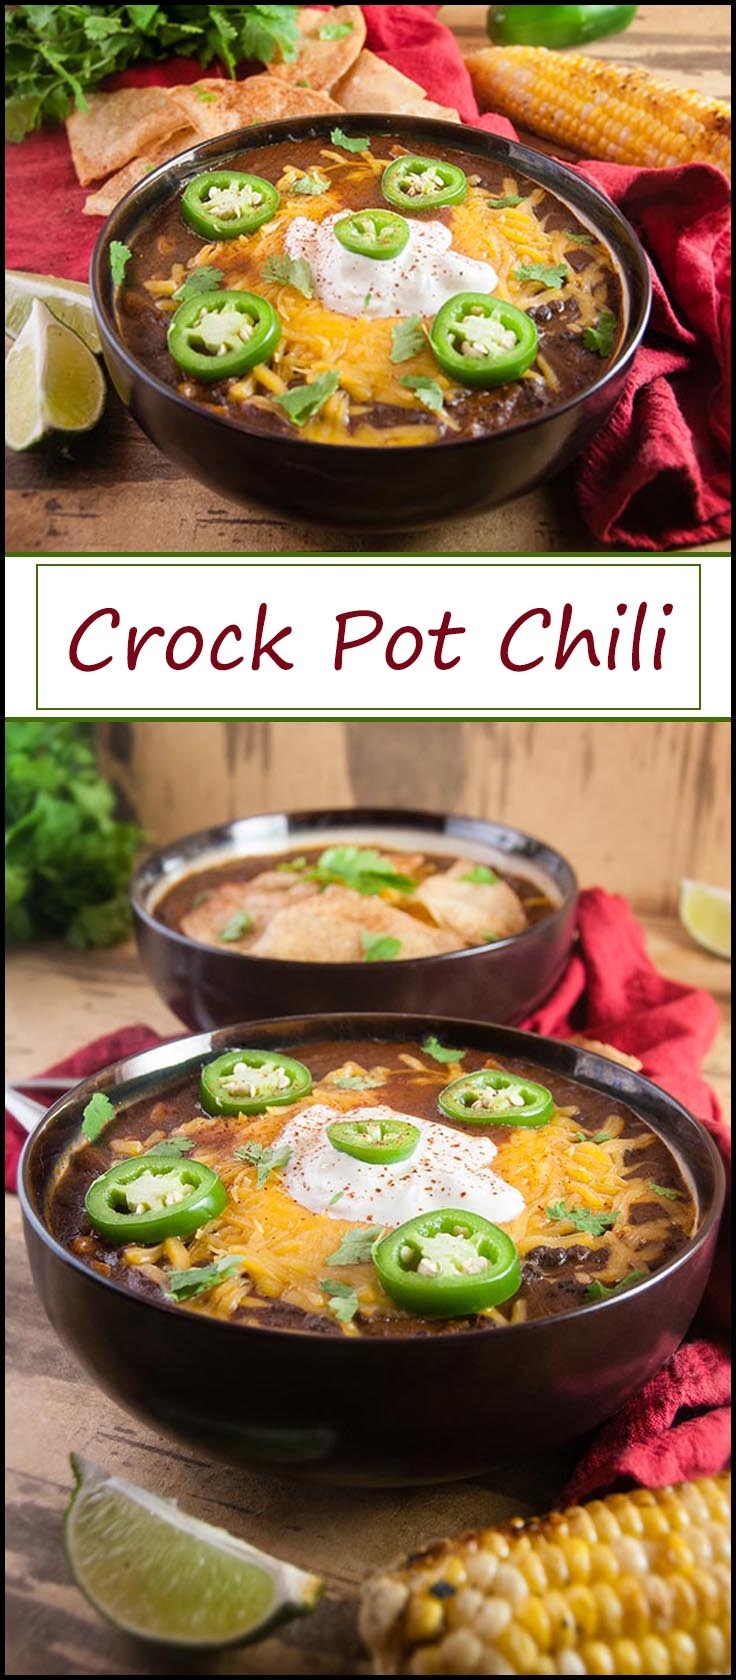 Easy Crock Pot Chili